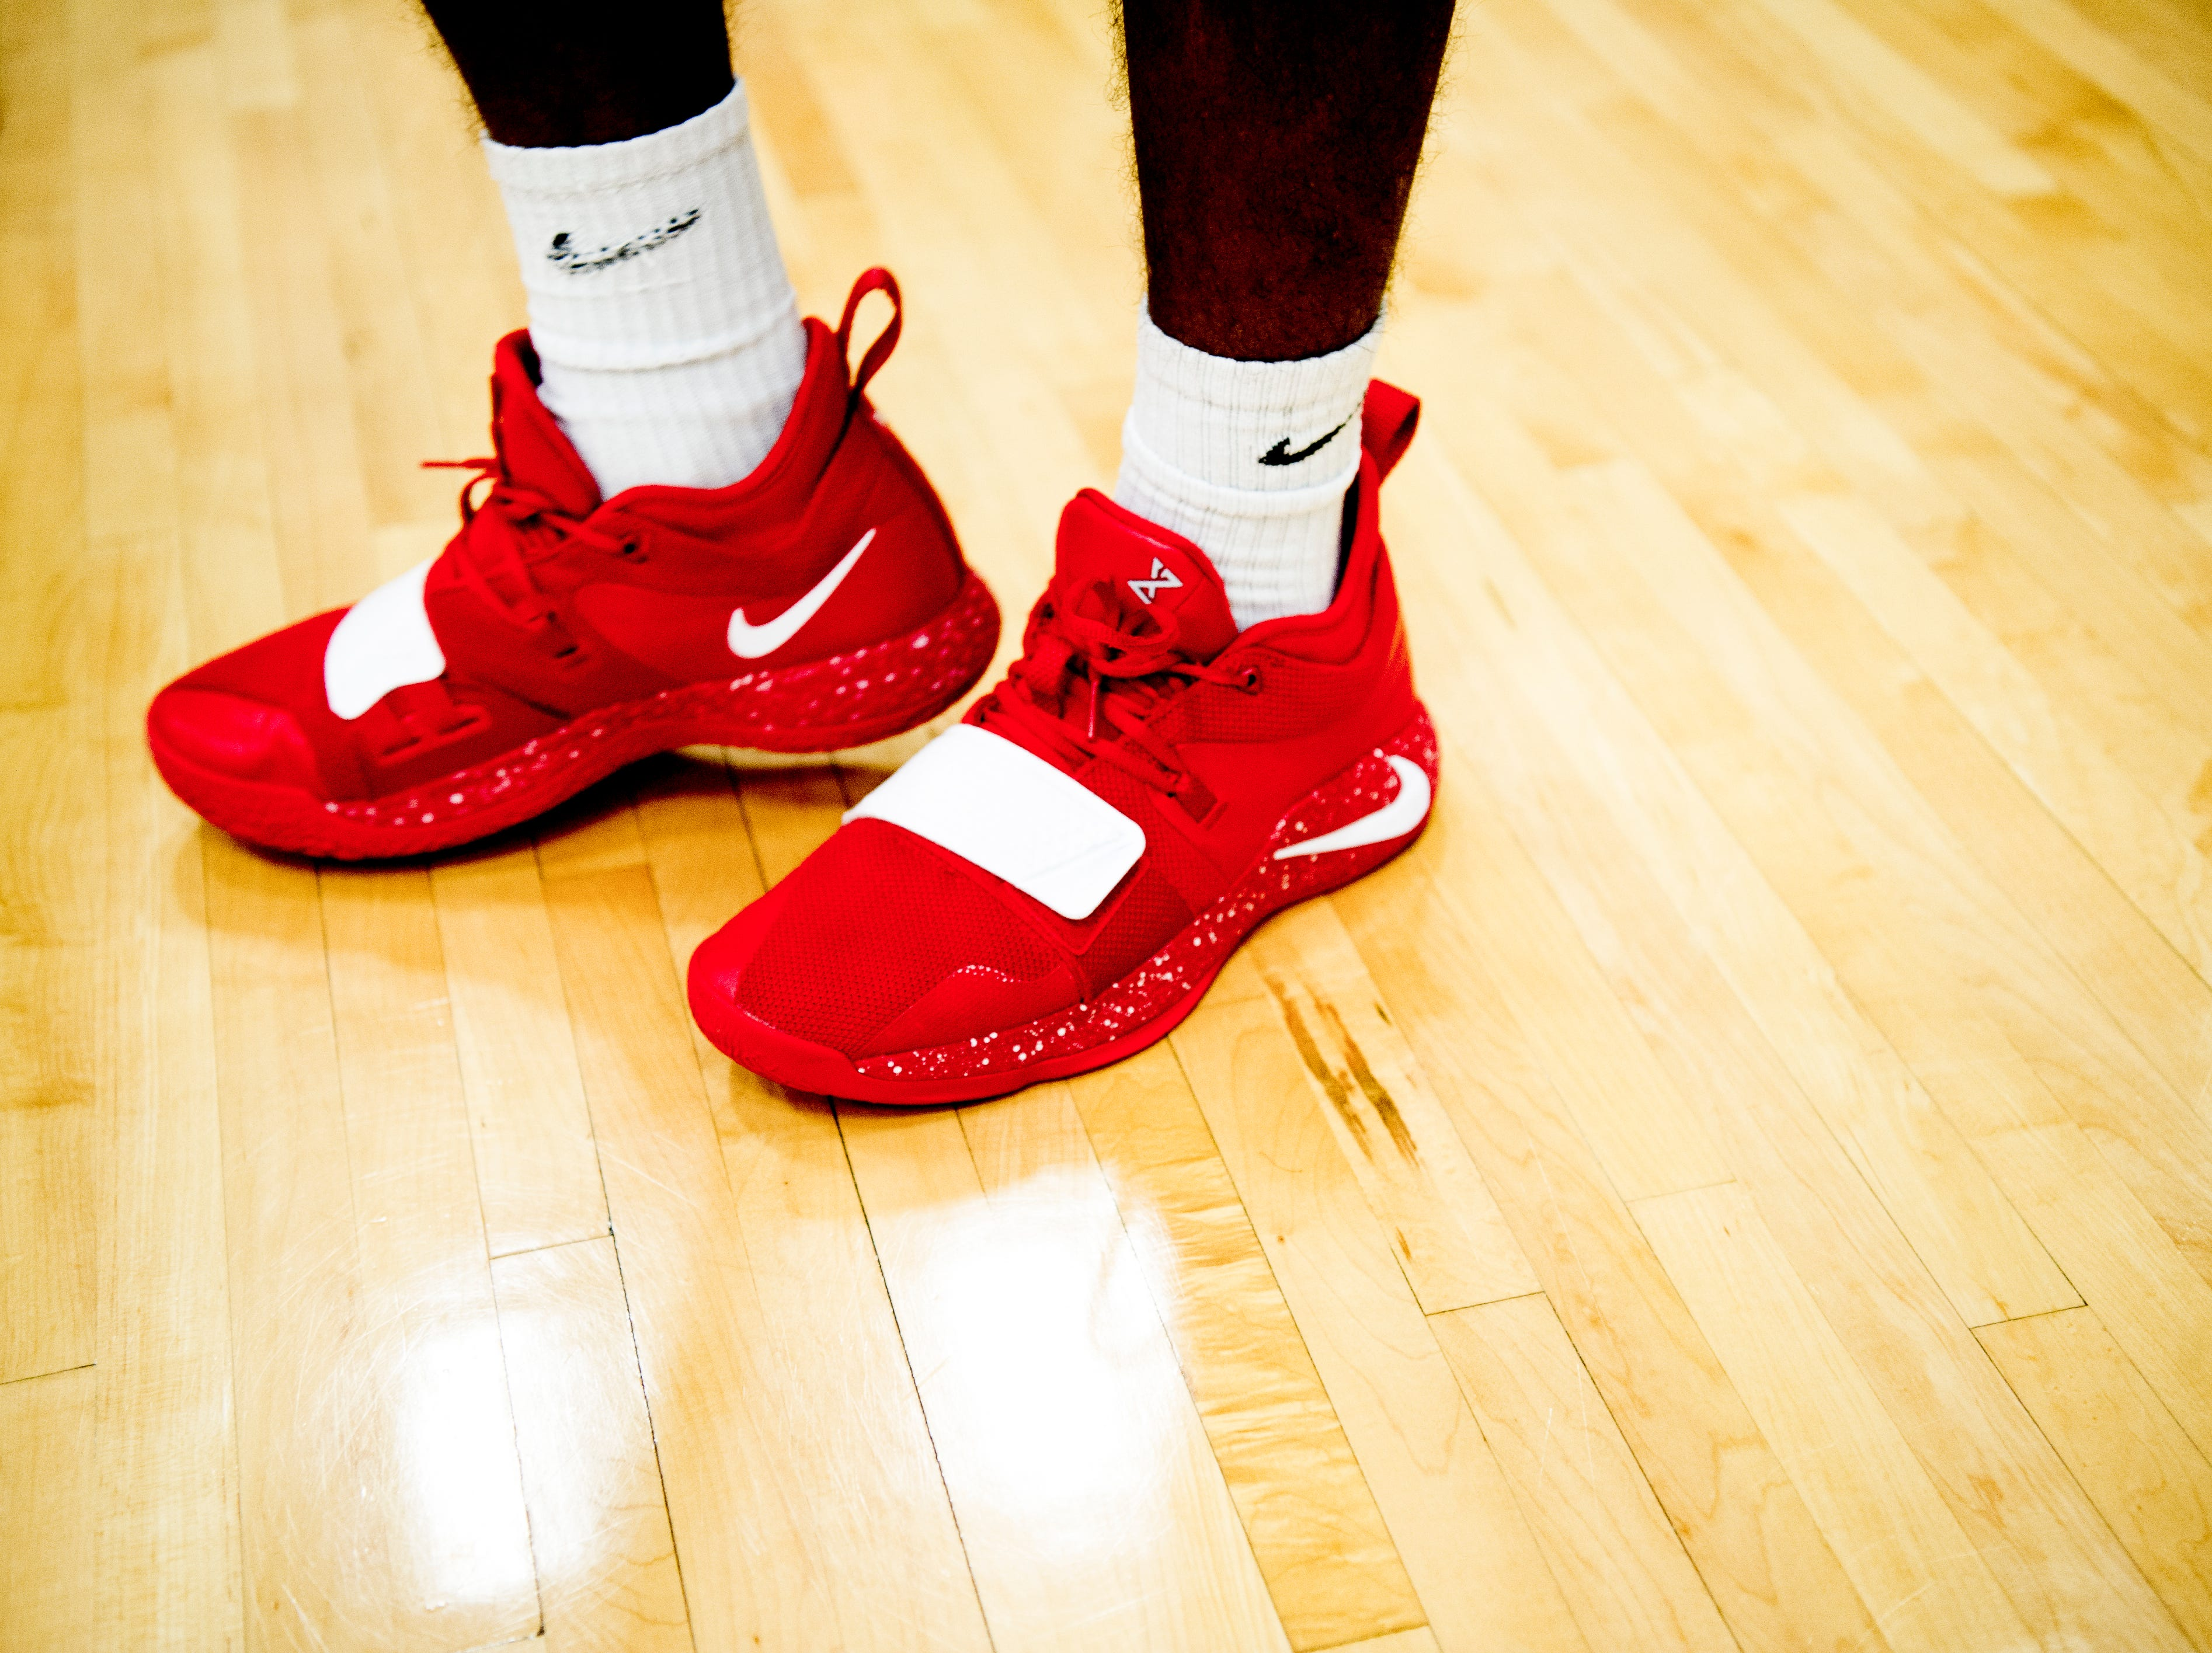 West players sport hot red sneakers during a game between West and Webb at West High School in Knoxville, Tennessee on Friday, January 4, 2019.